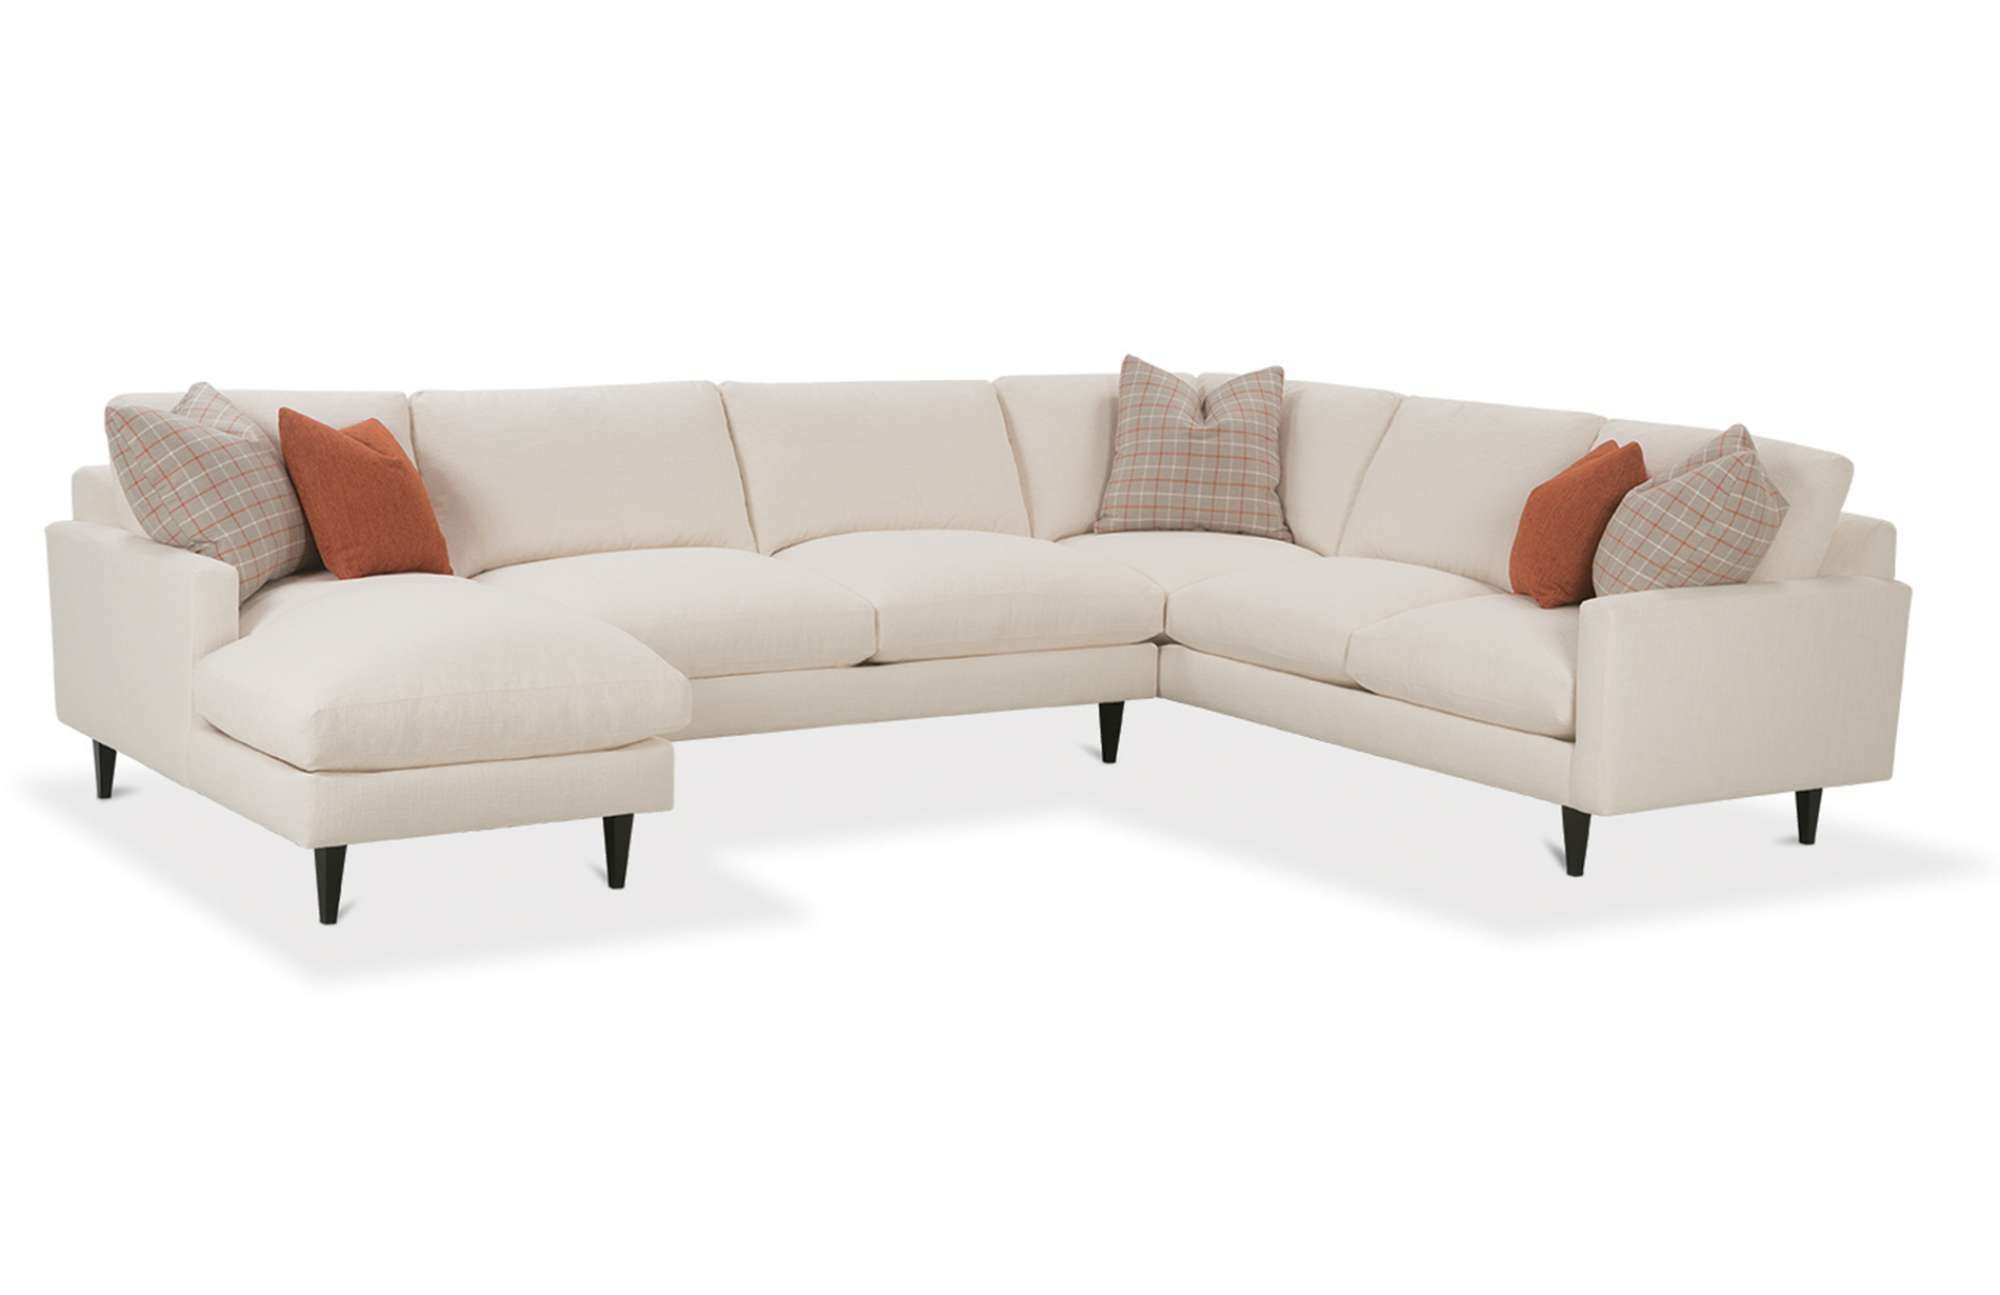 The Oslo Sectional Can Be The Perfect Compliment To Any Room In